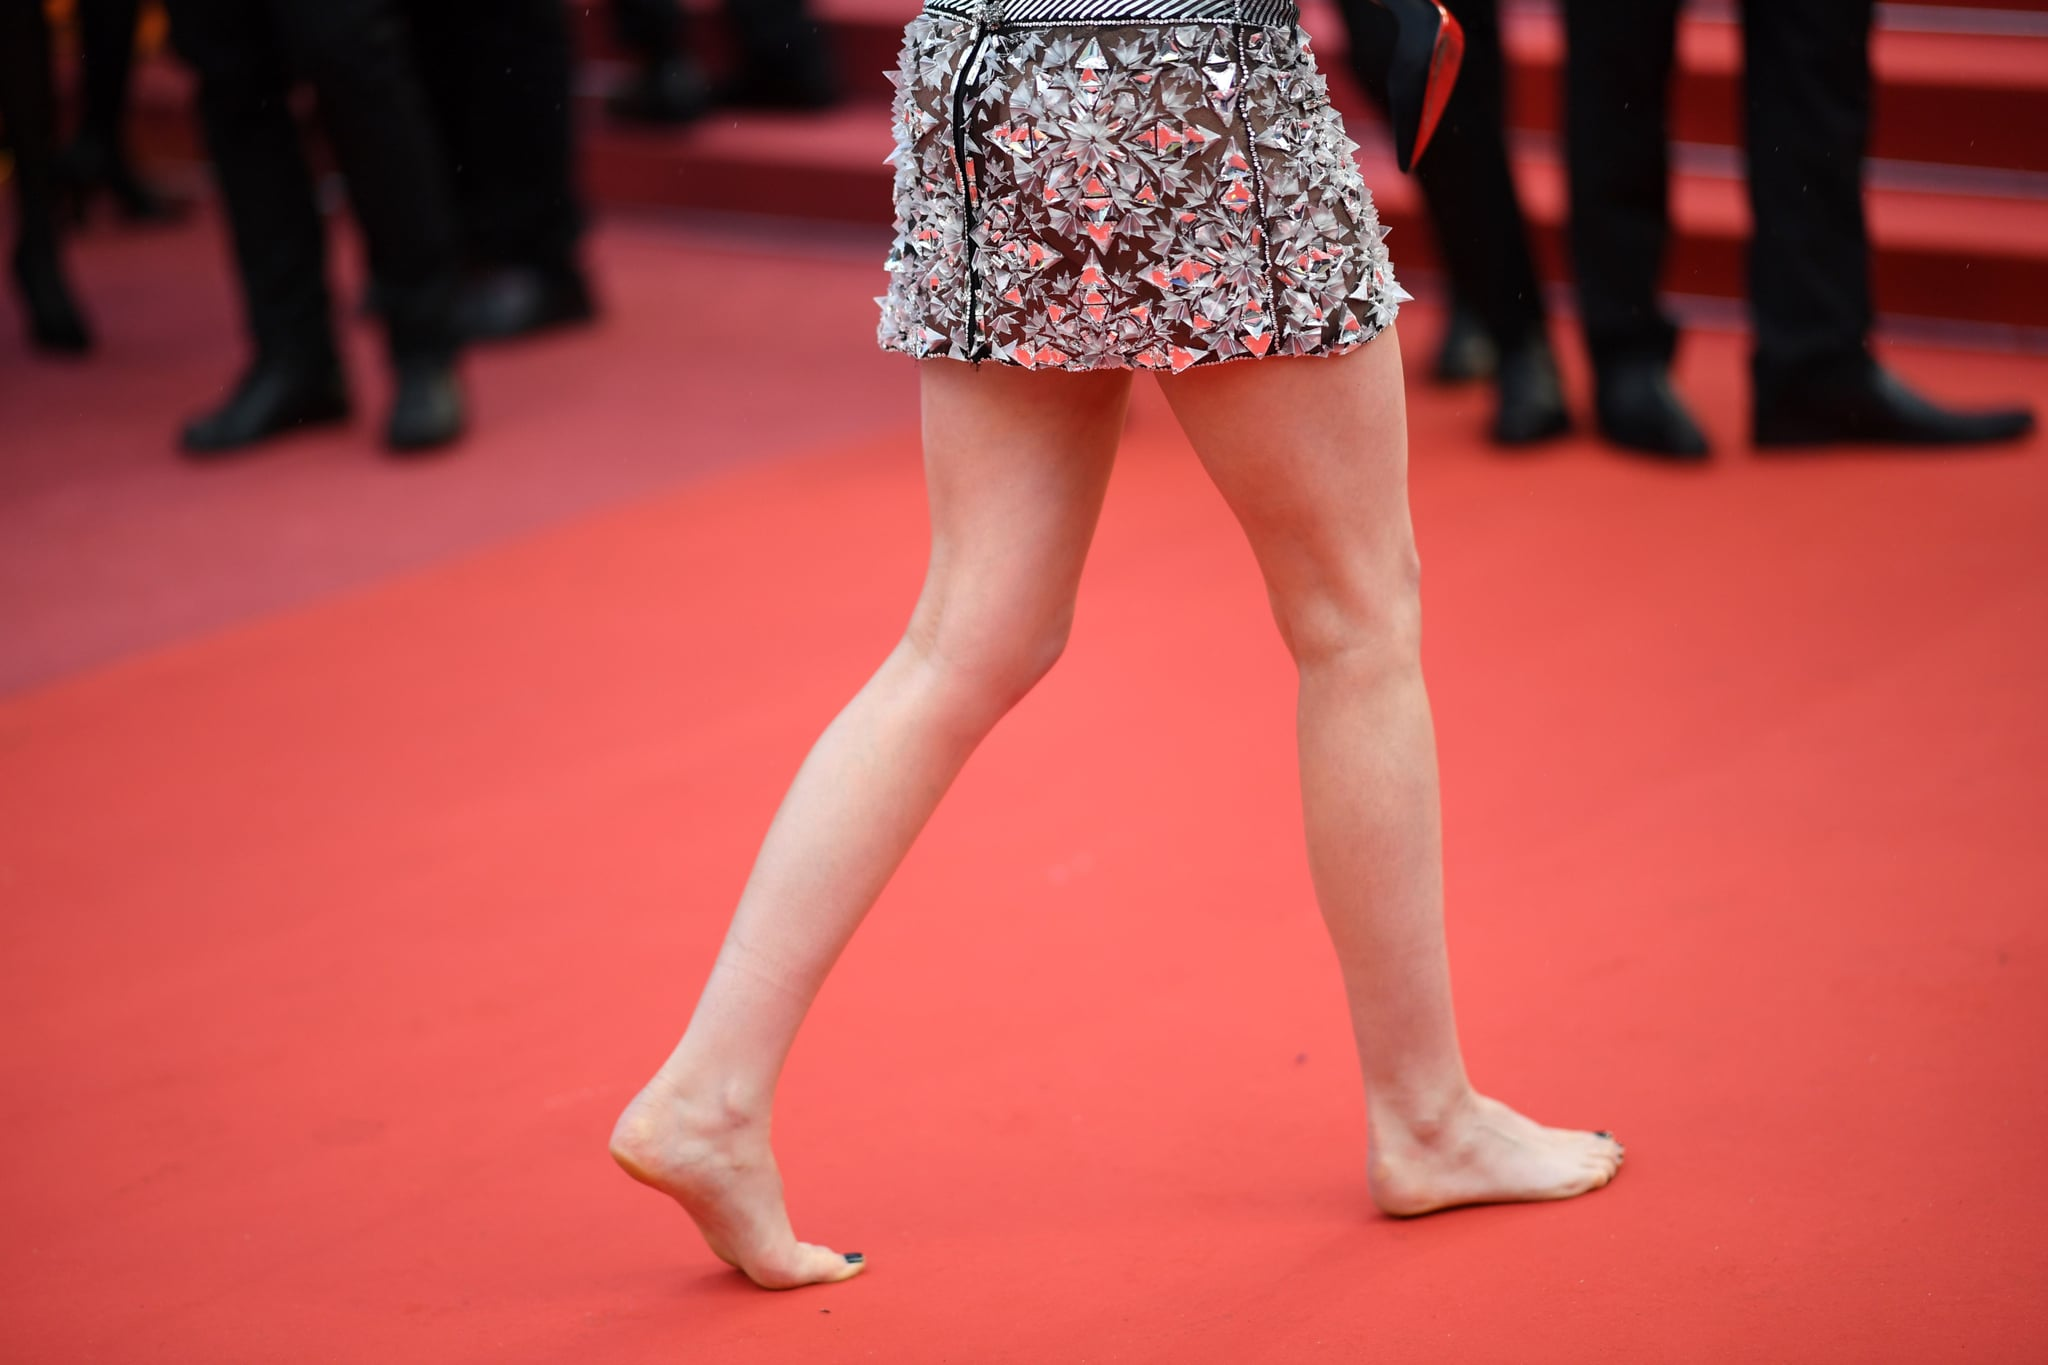 US actress and member of the Feature Film Jury Kristen Stewart walks barefoot on the red carpet after she remove her shoes as she arrives on May 14, 2018 for the screening of the film